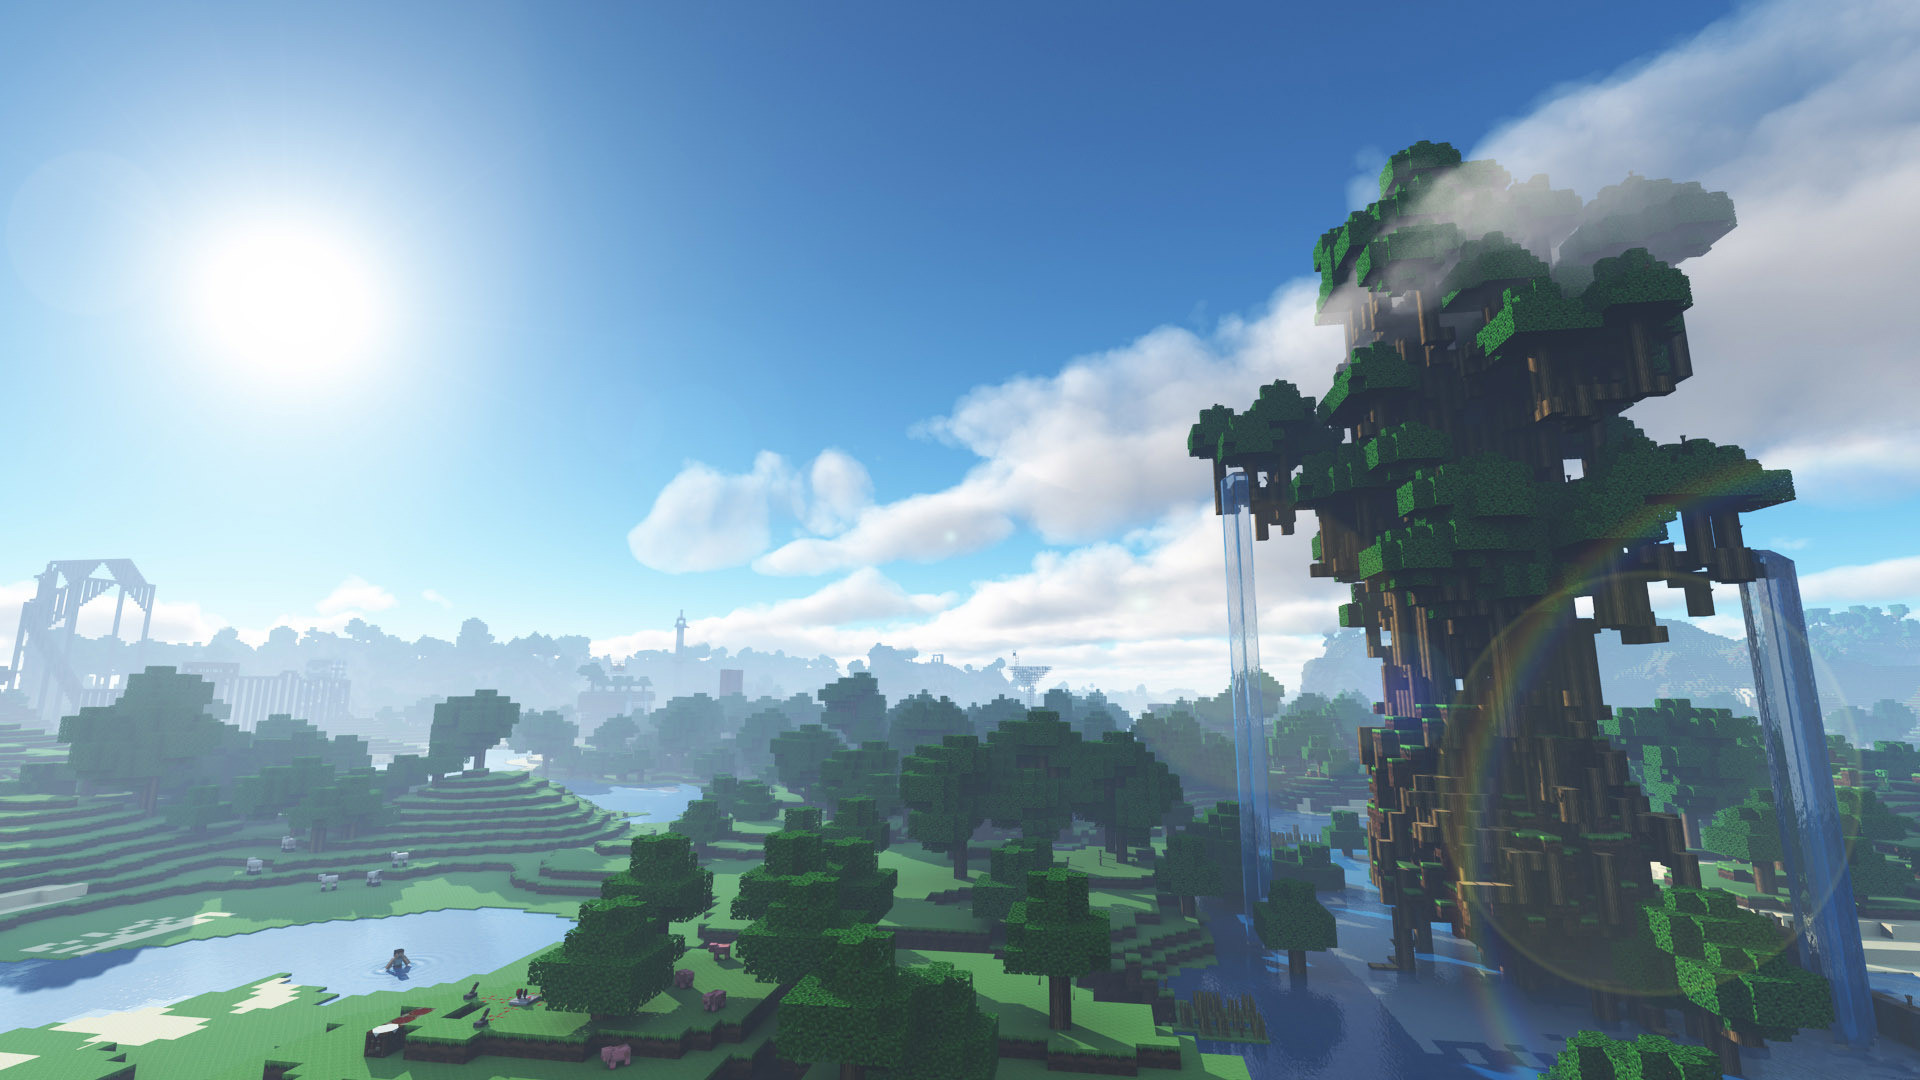 Good Wallpaper Minecraft Blue - 1032099-hd-wallpapers-of-minecraft-1920x1080-laptop  Perfect Image Reference_33923.jpg